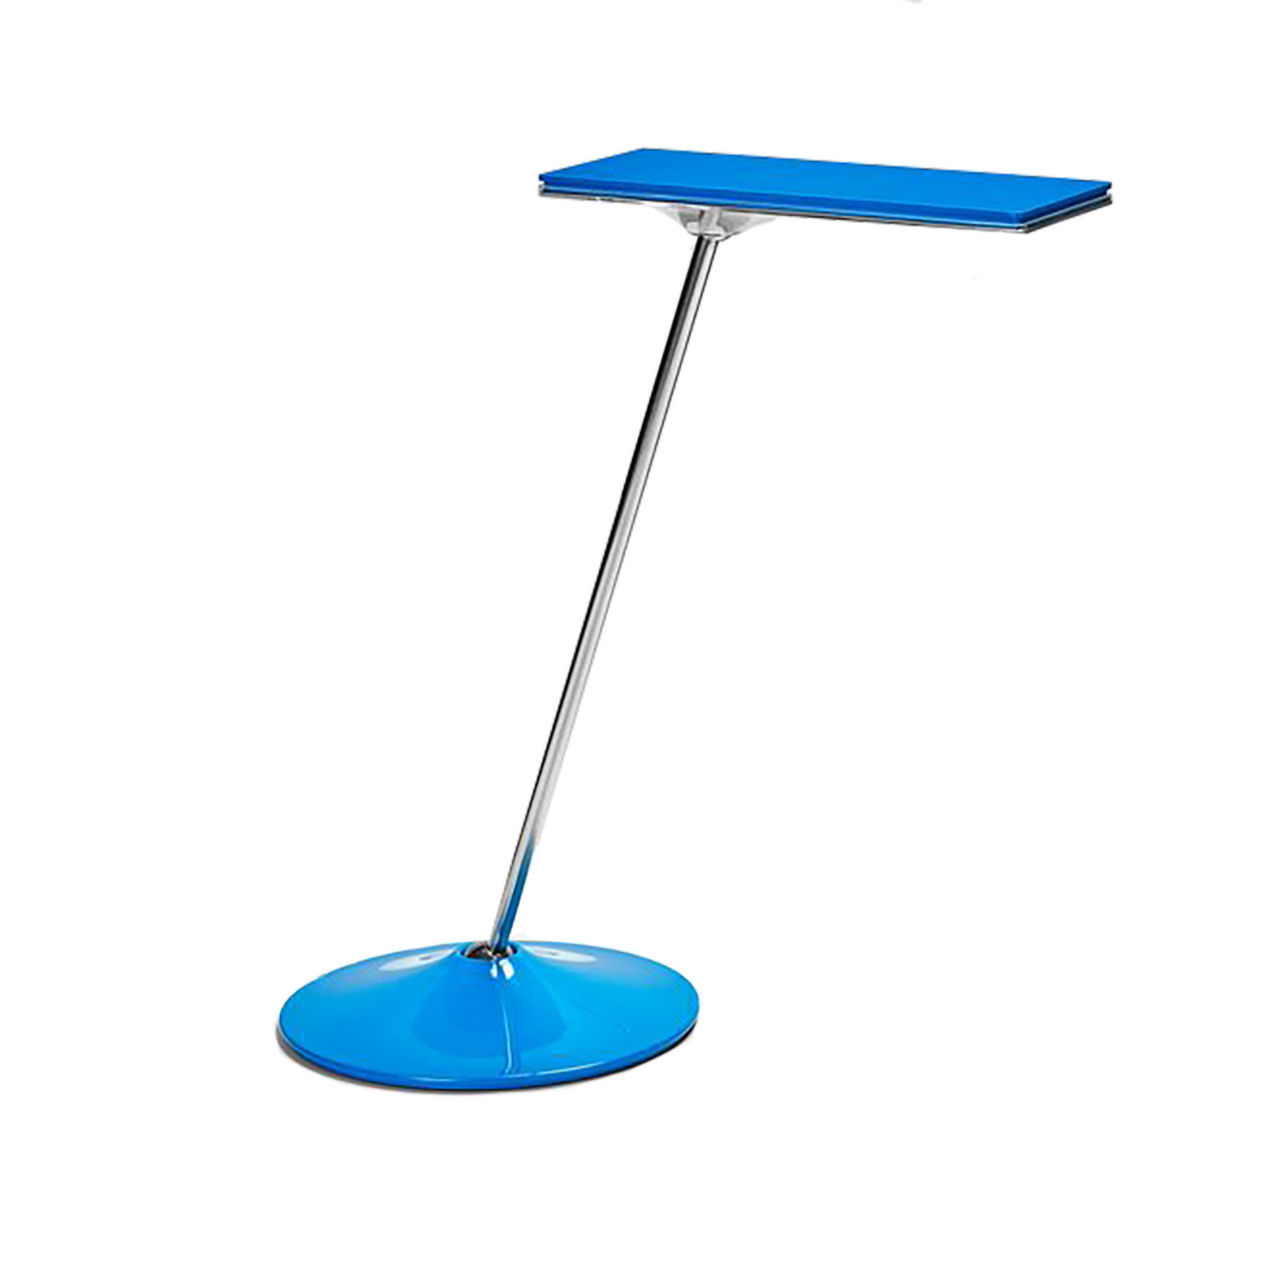 Horizon 20 Desk Lamp in Twilight Blue by Humanscale